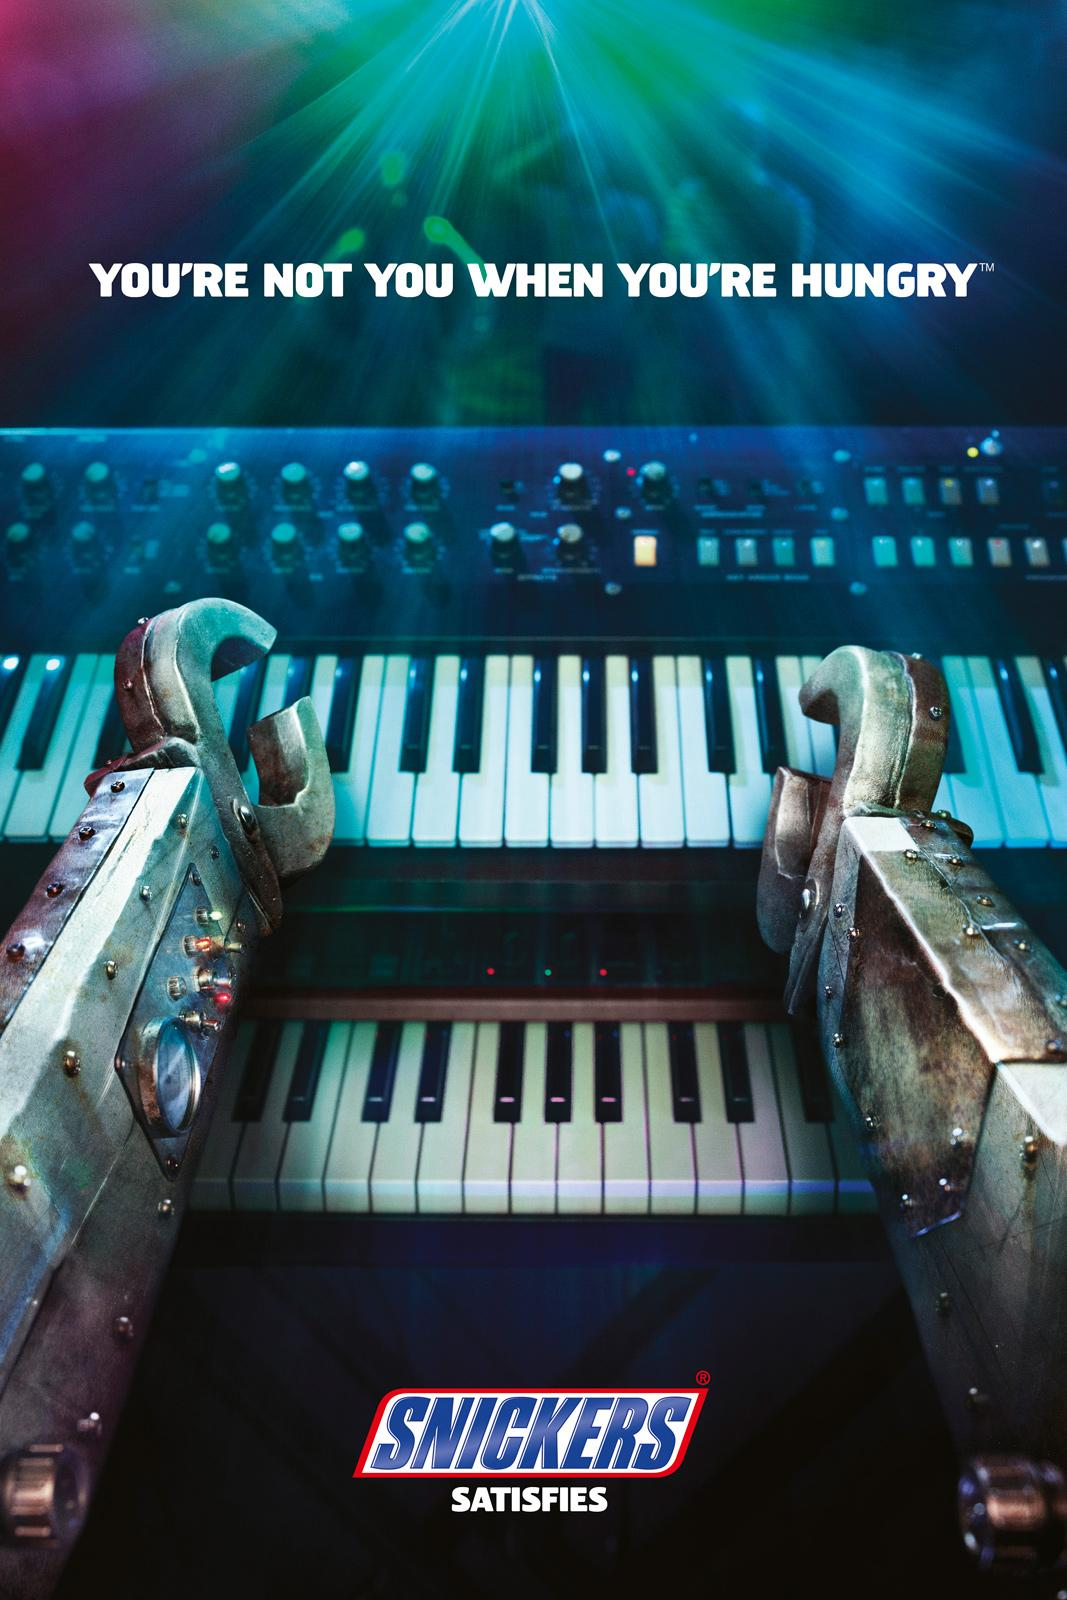 Snickers Outdoor Ad -  You're not you when you're hungry, Concert